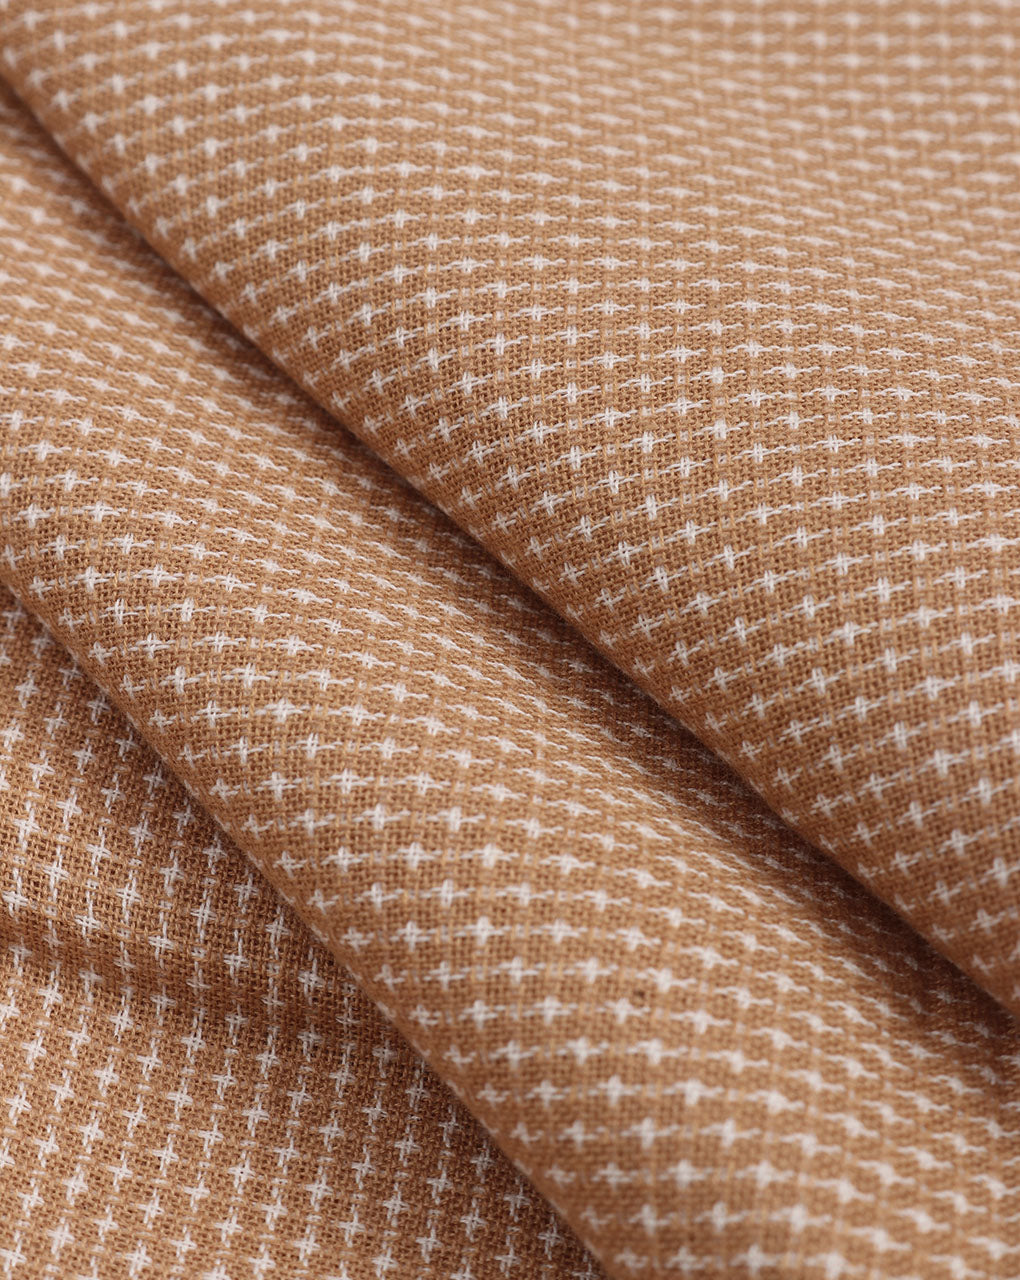 Beige & White Woven Cotton Dobby Fabric - Fabriclore.com